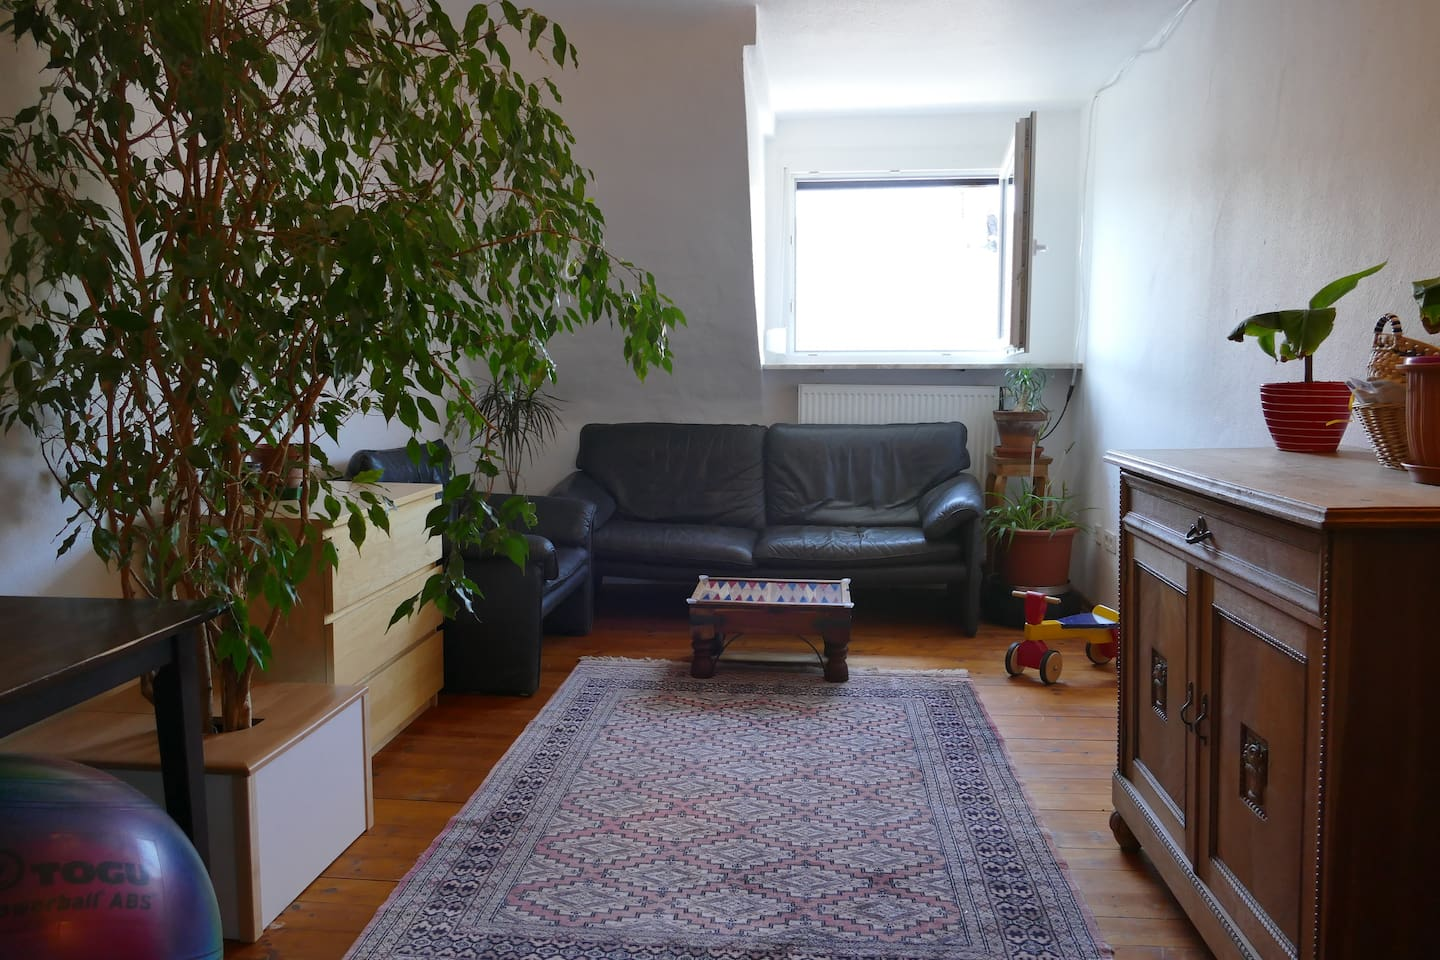 The living room, with babyproof plant pots and a second desk space